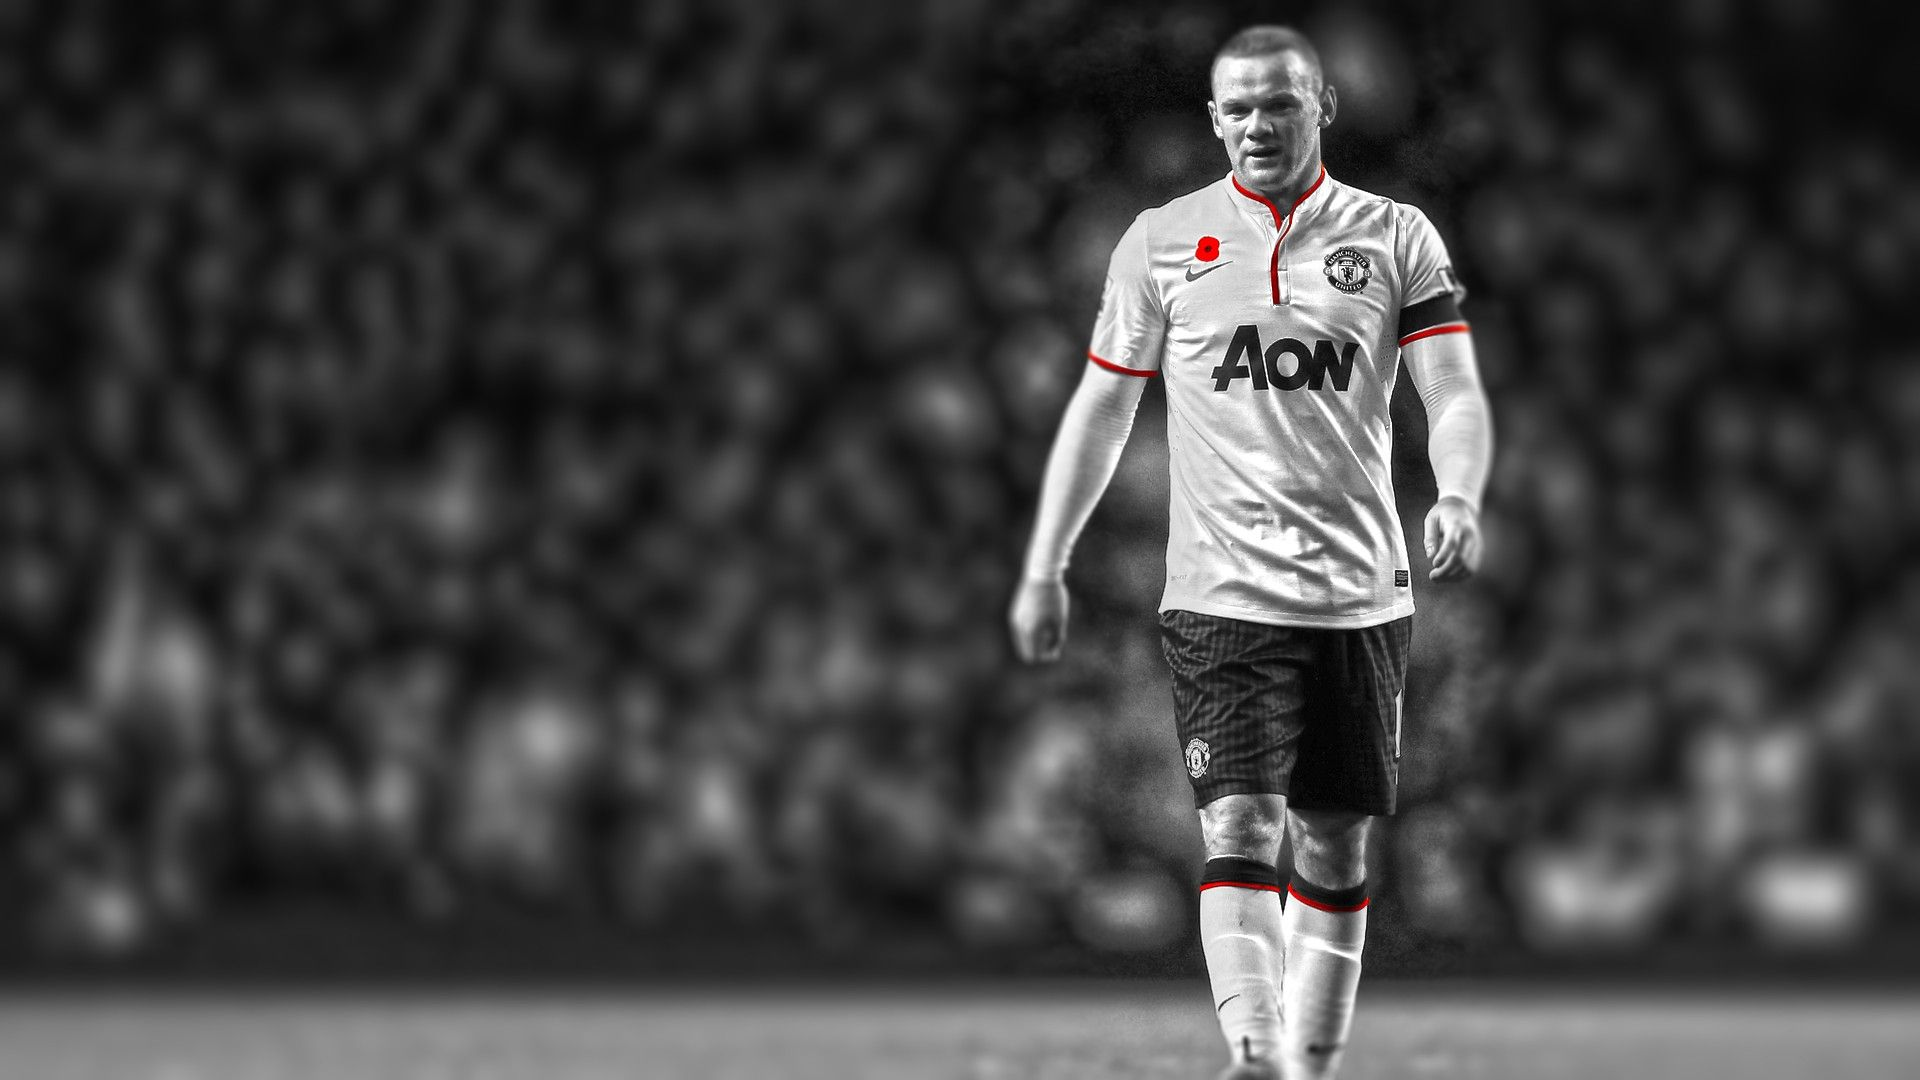 Are you looking for wayne rooney hd wallppers download latest collection of wayne rooney hd